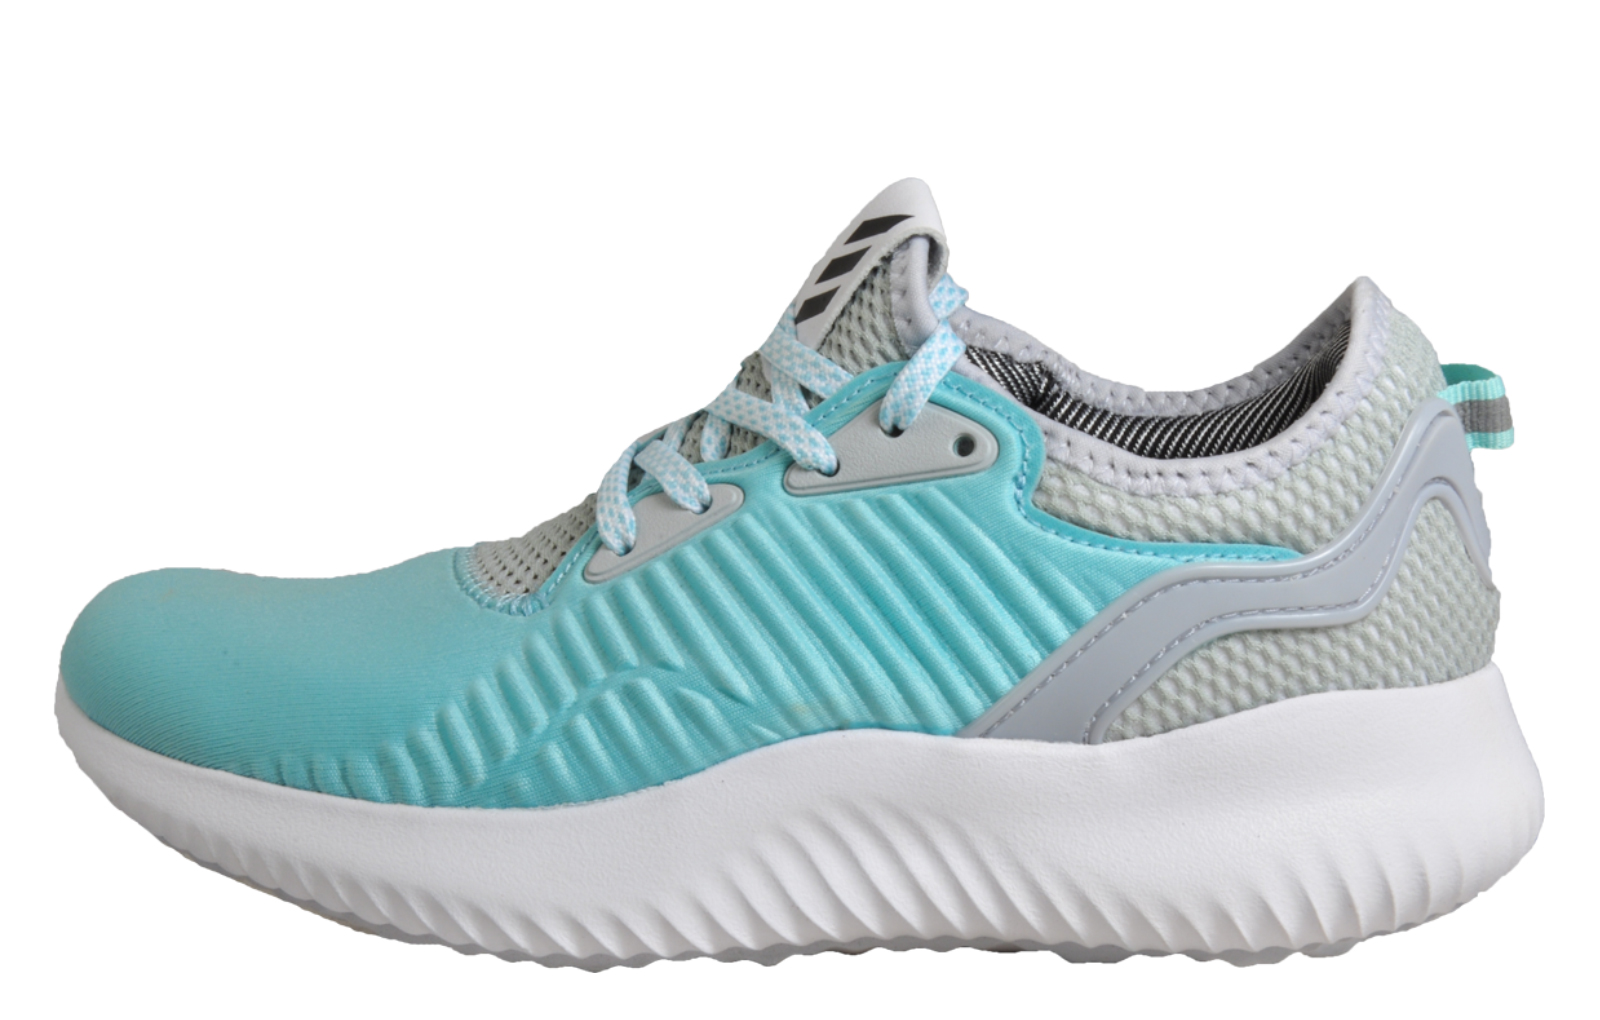 quality design 29c99 598f7 Adidas Alphabounce Lux Womens